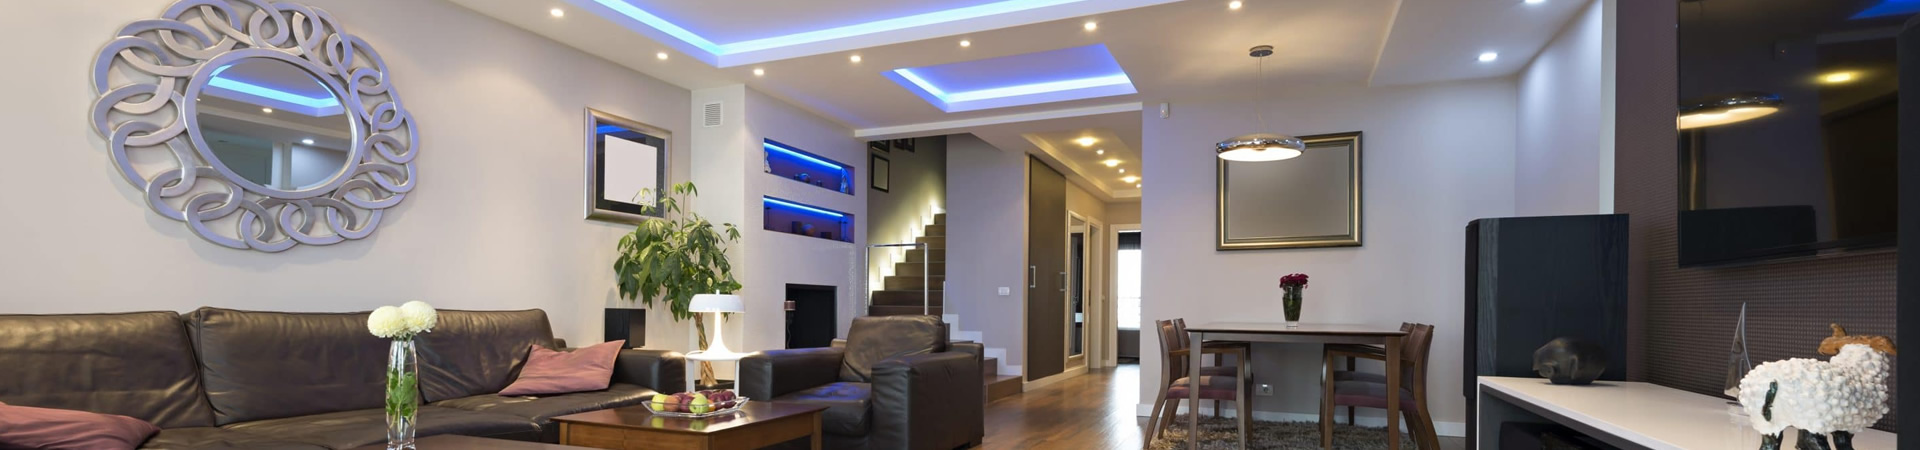 Basement And Home Conversions